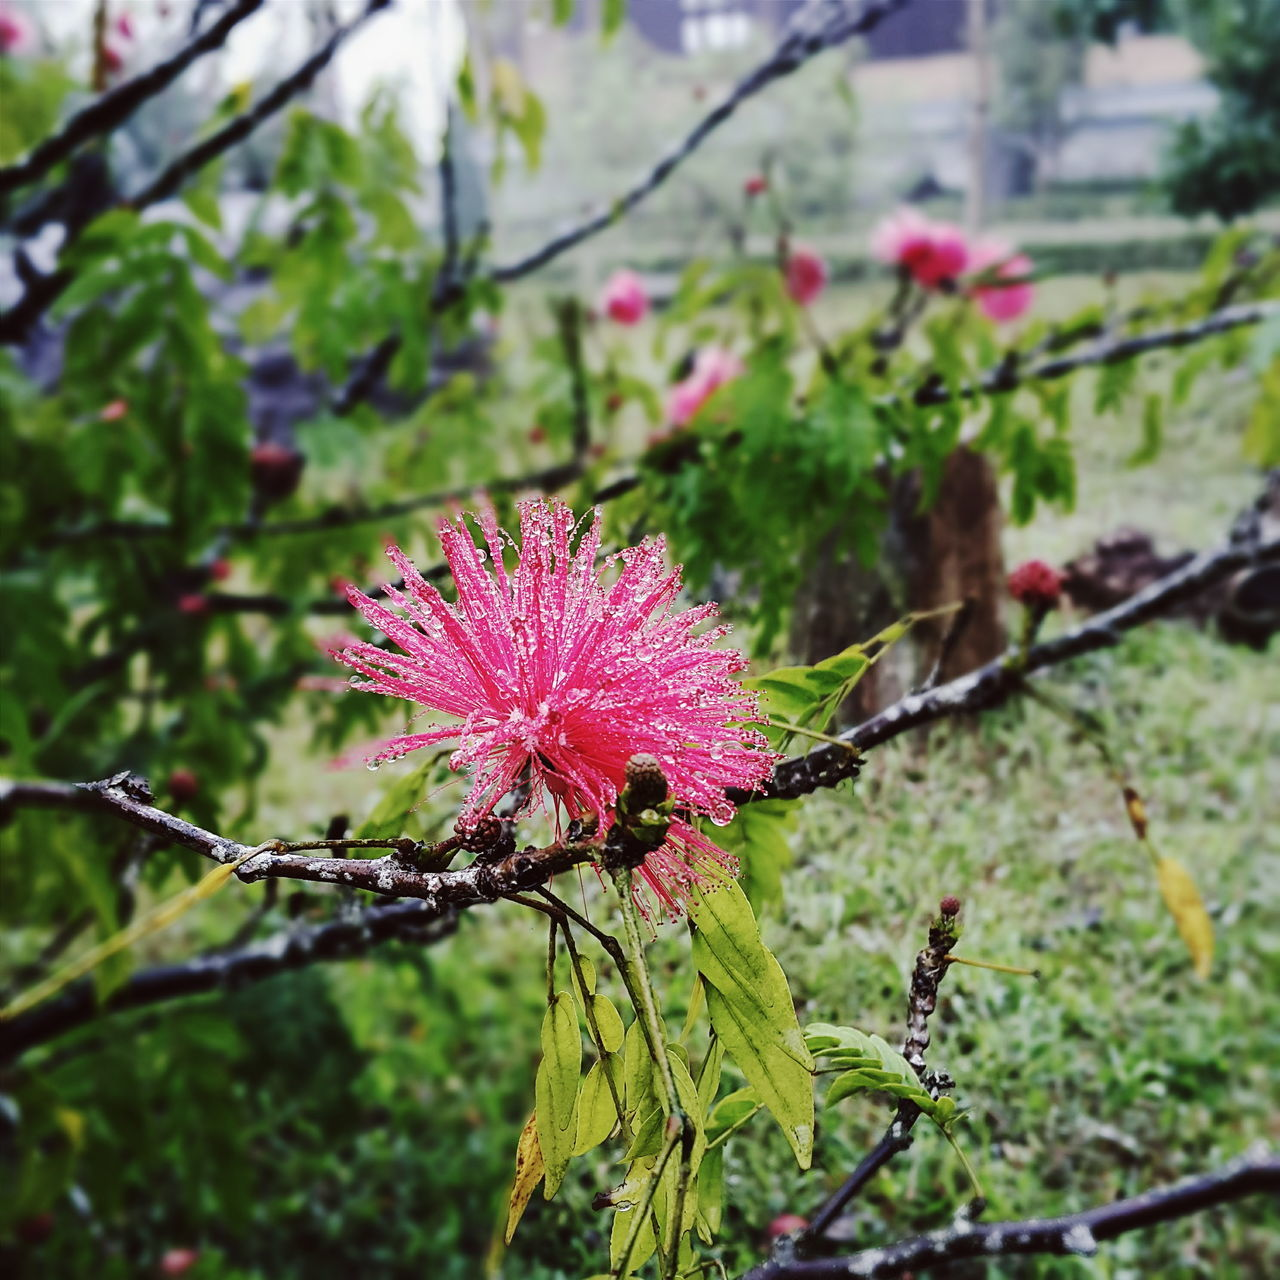 flower, focus on foreground, nature, growth, plant, day, fragility, outdoors, no people, pink color, beauty in nature, freshness, flower head, close-up, thistle, sky